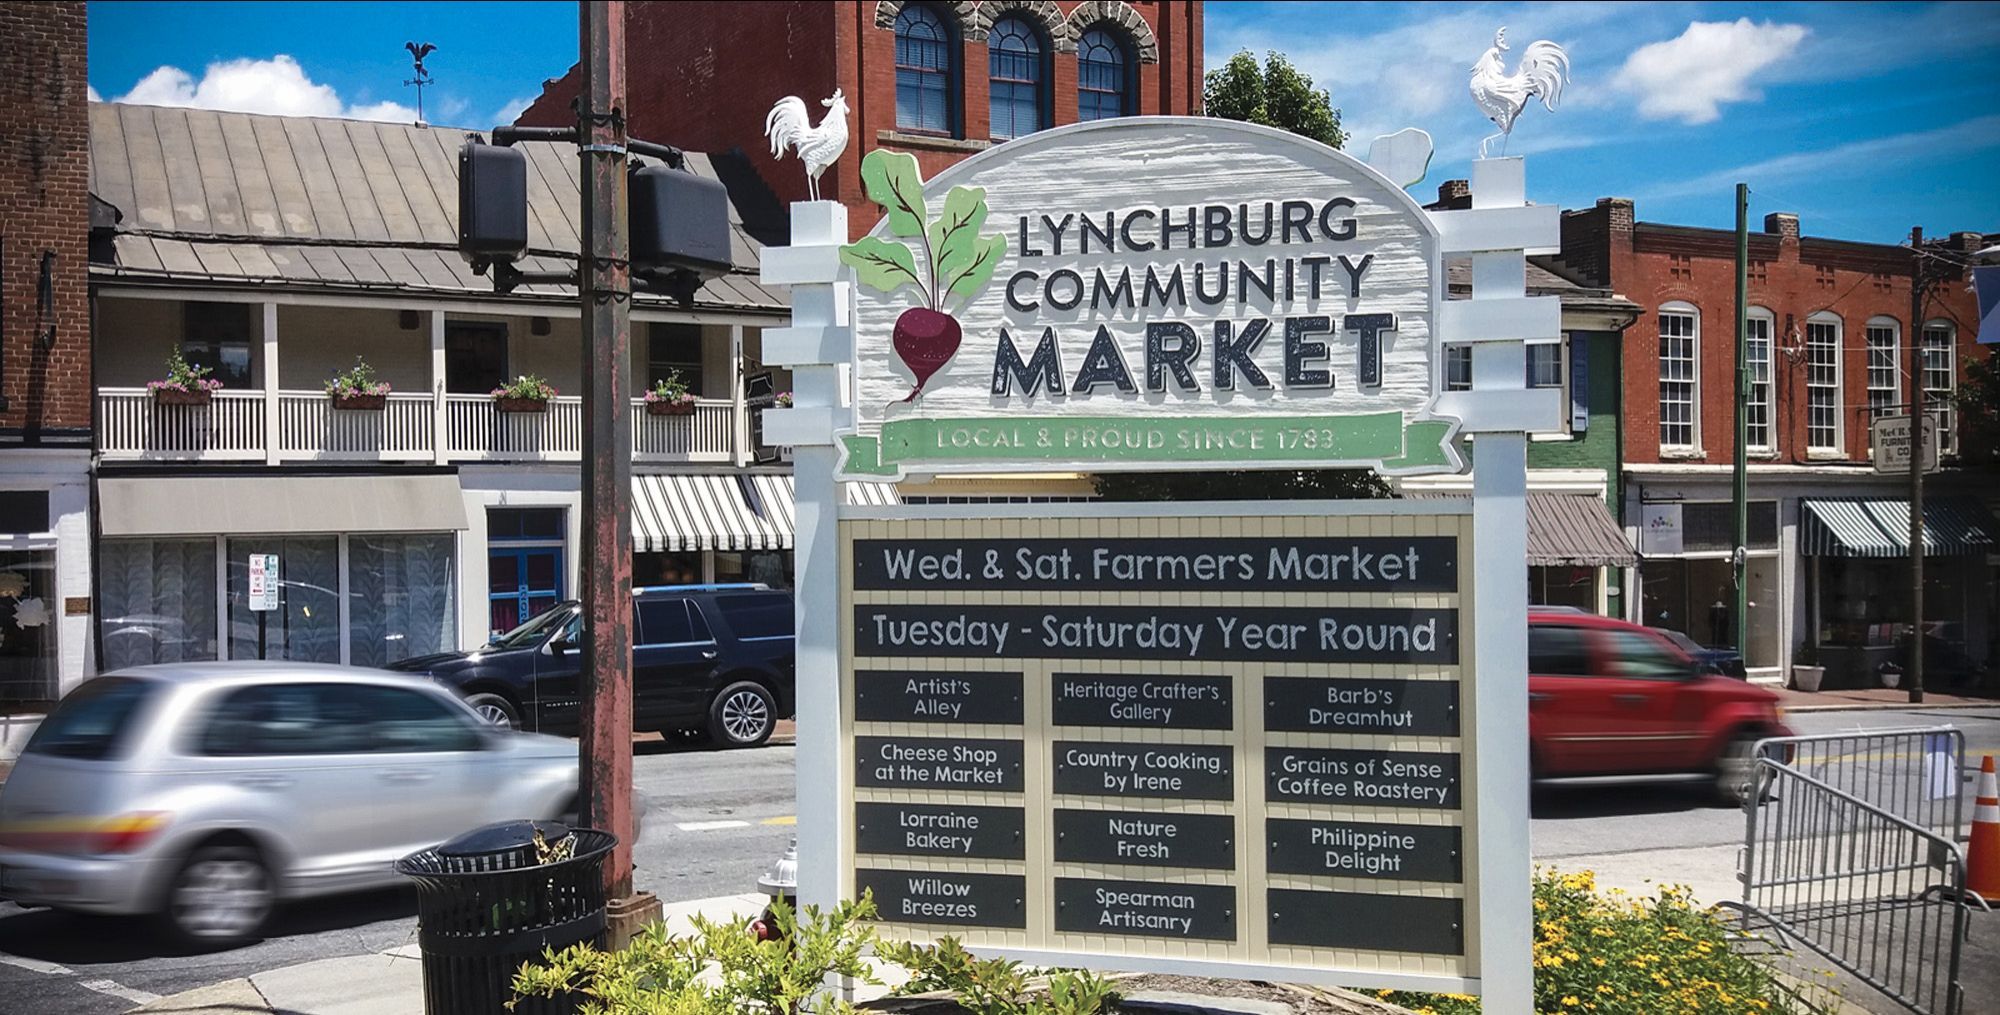 Lynchburg Community Market Virginia Signage McBride